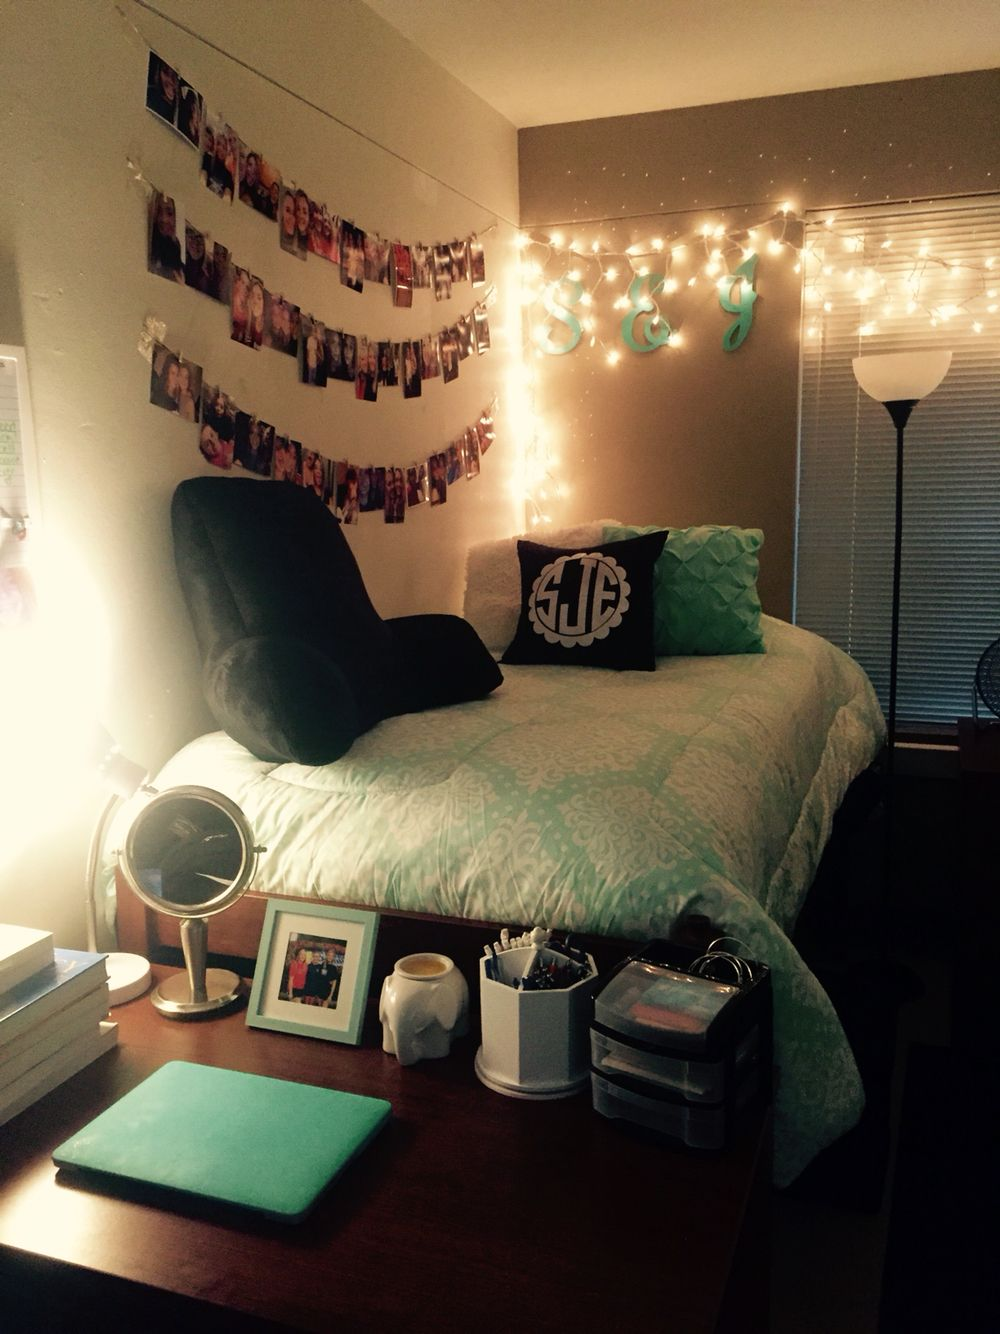 College dorm room 2015 college bound pinterest for Hall room decoration ideas